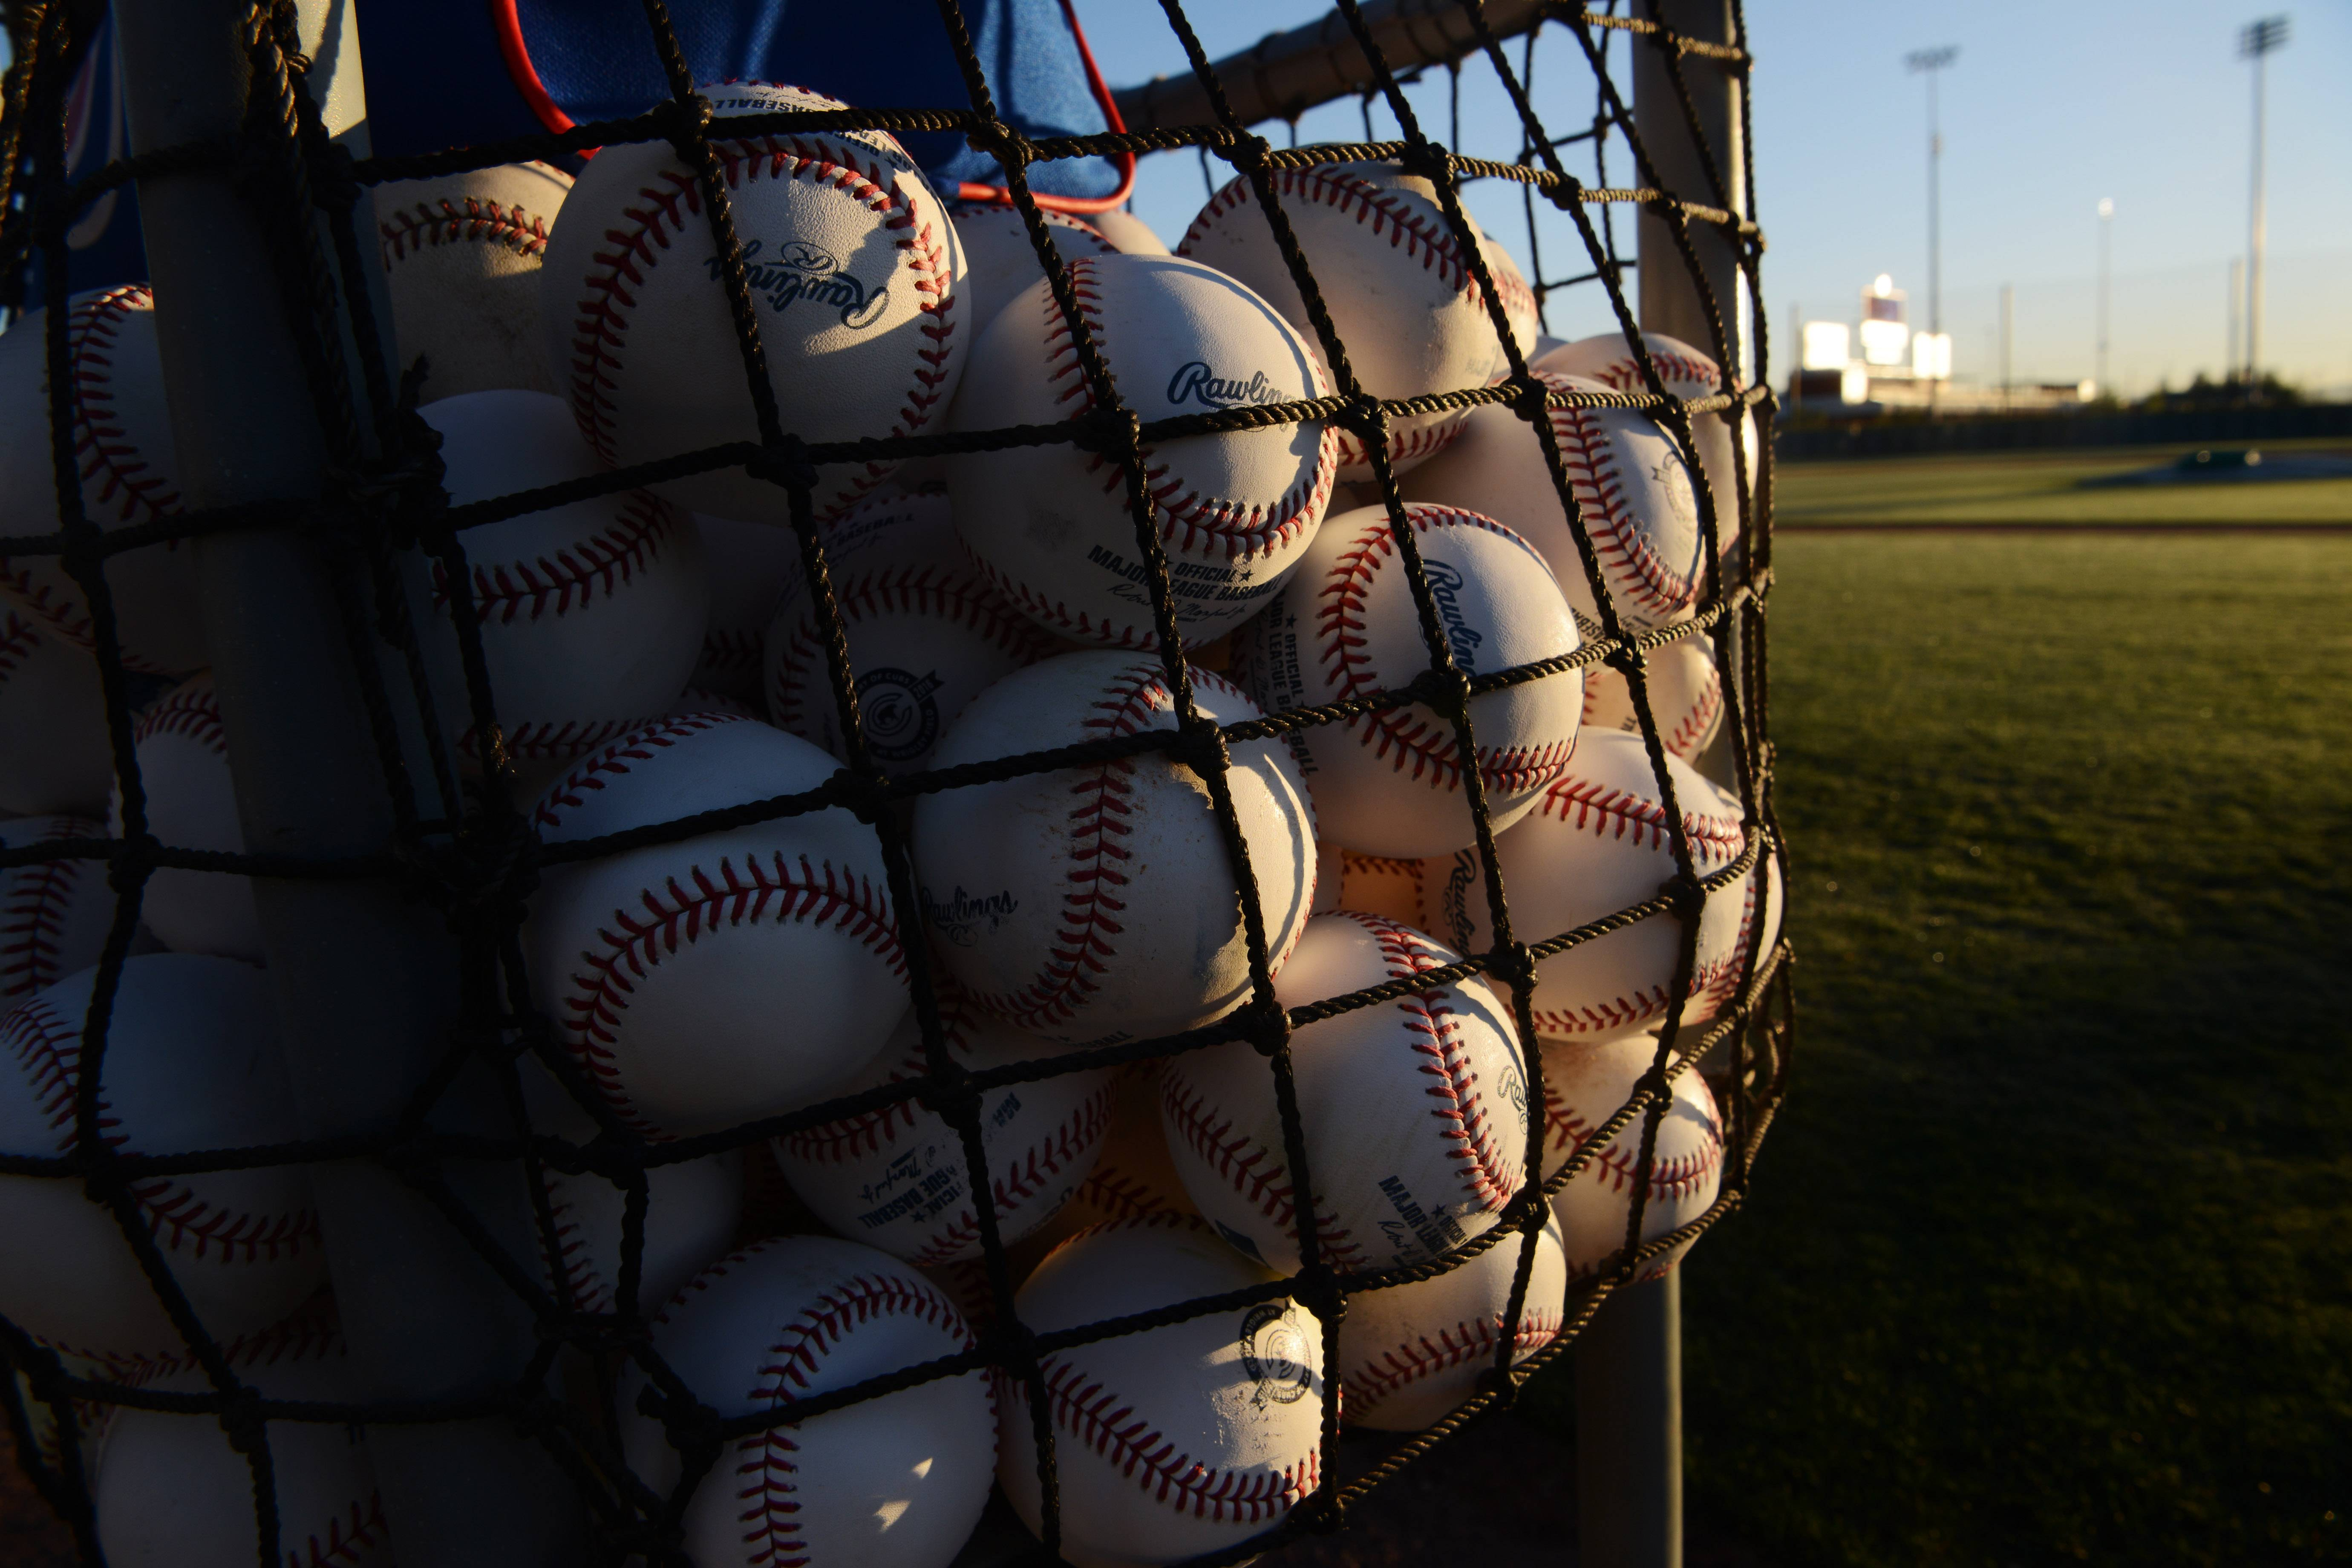 A basket of baseballs is ready for Chicago Cubs players prior to Friday's workout at Sloan Park in Mesa, Arizona.